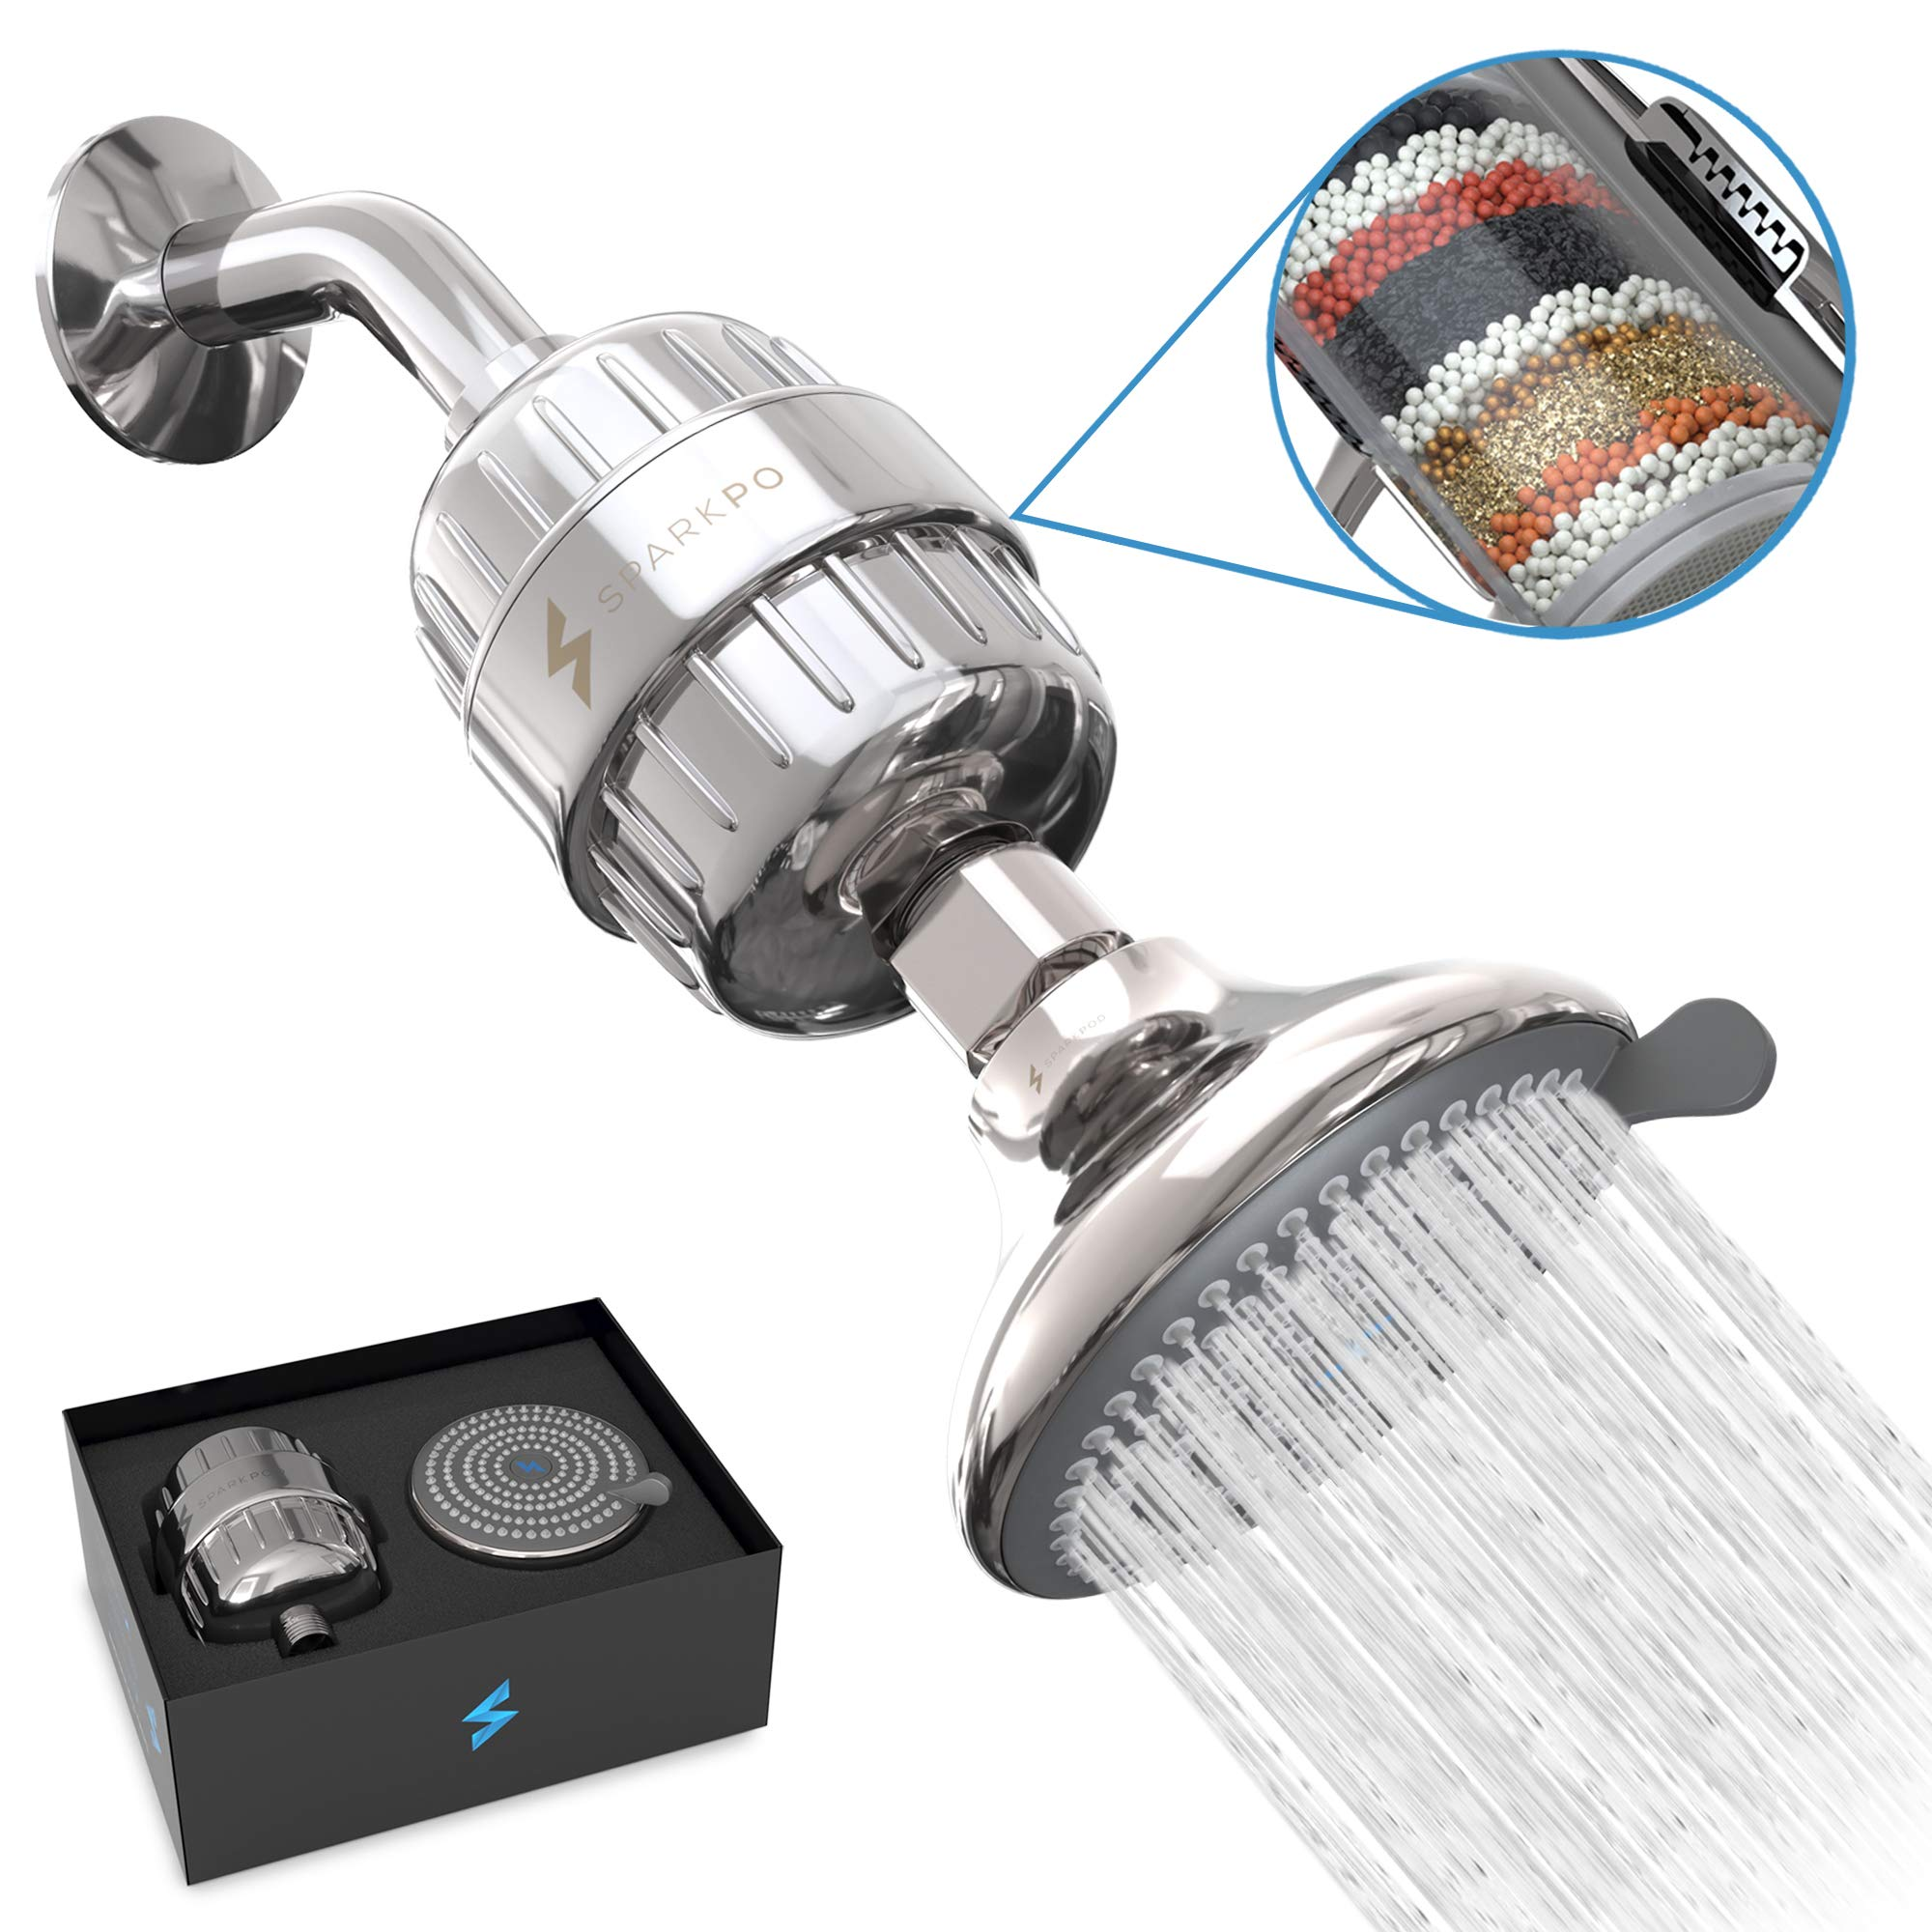 SparkPod Shower Filter Head - Filtered Shower Head with Proprietary Shower Filters to Remove Chlorine and Flouride - 12 Stage Showerhead Filter for Healthy Skin, Hair, and Nails by SparkPod